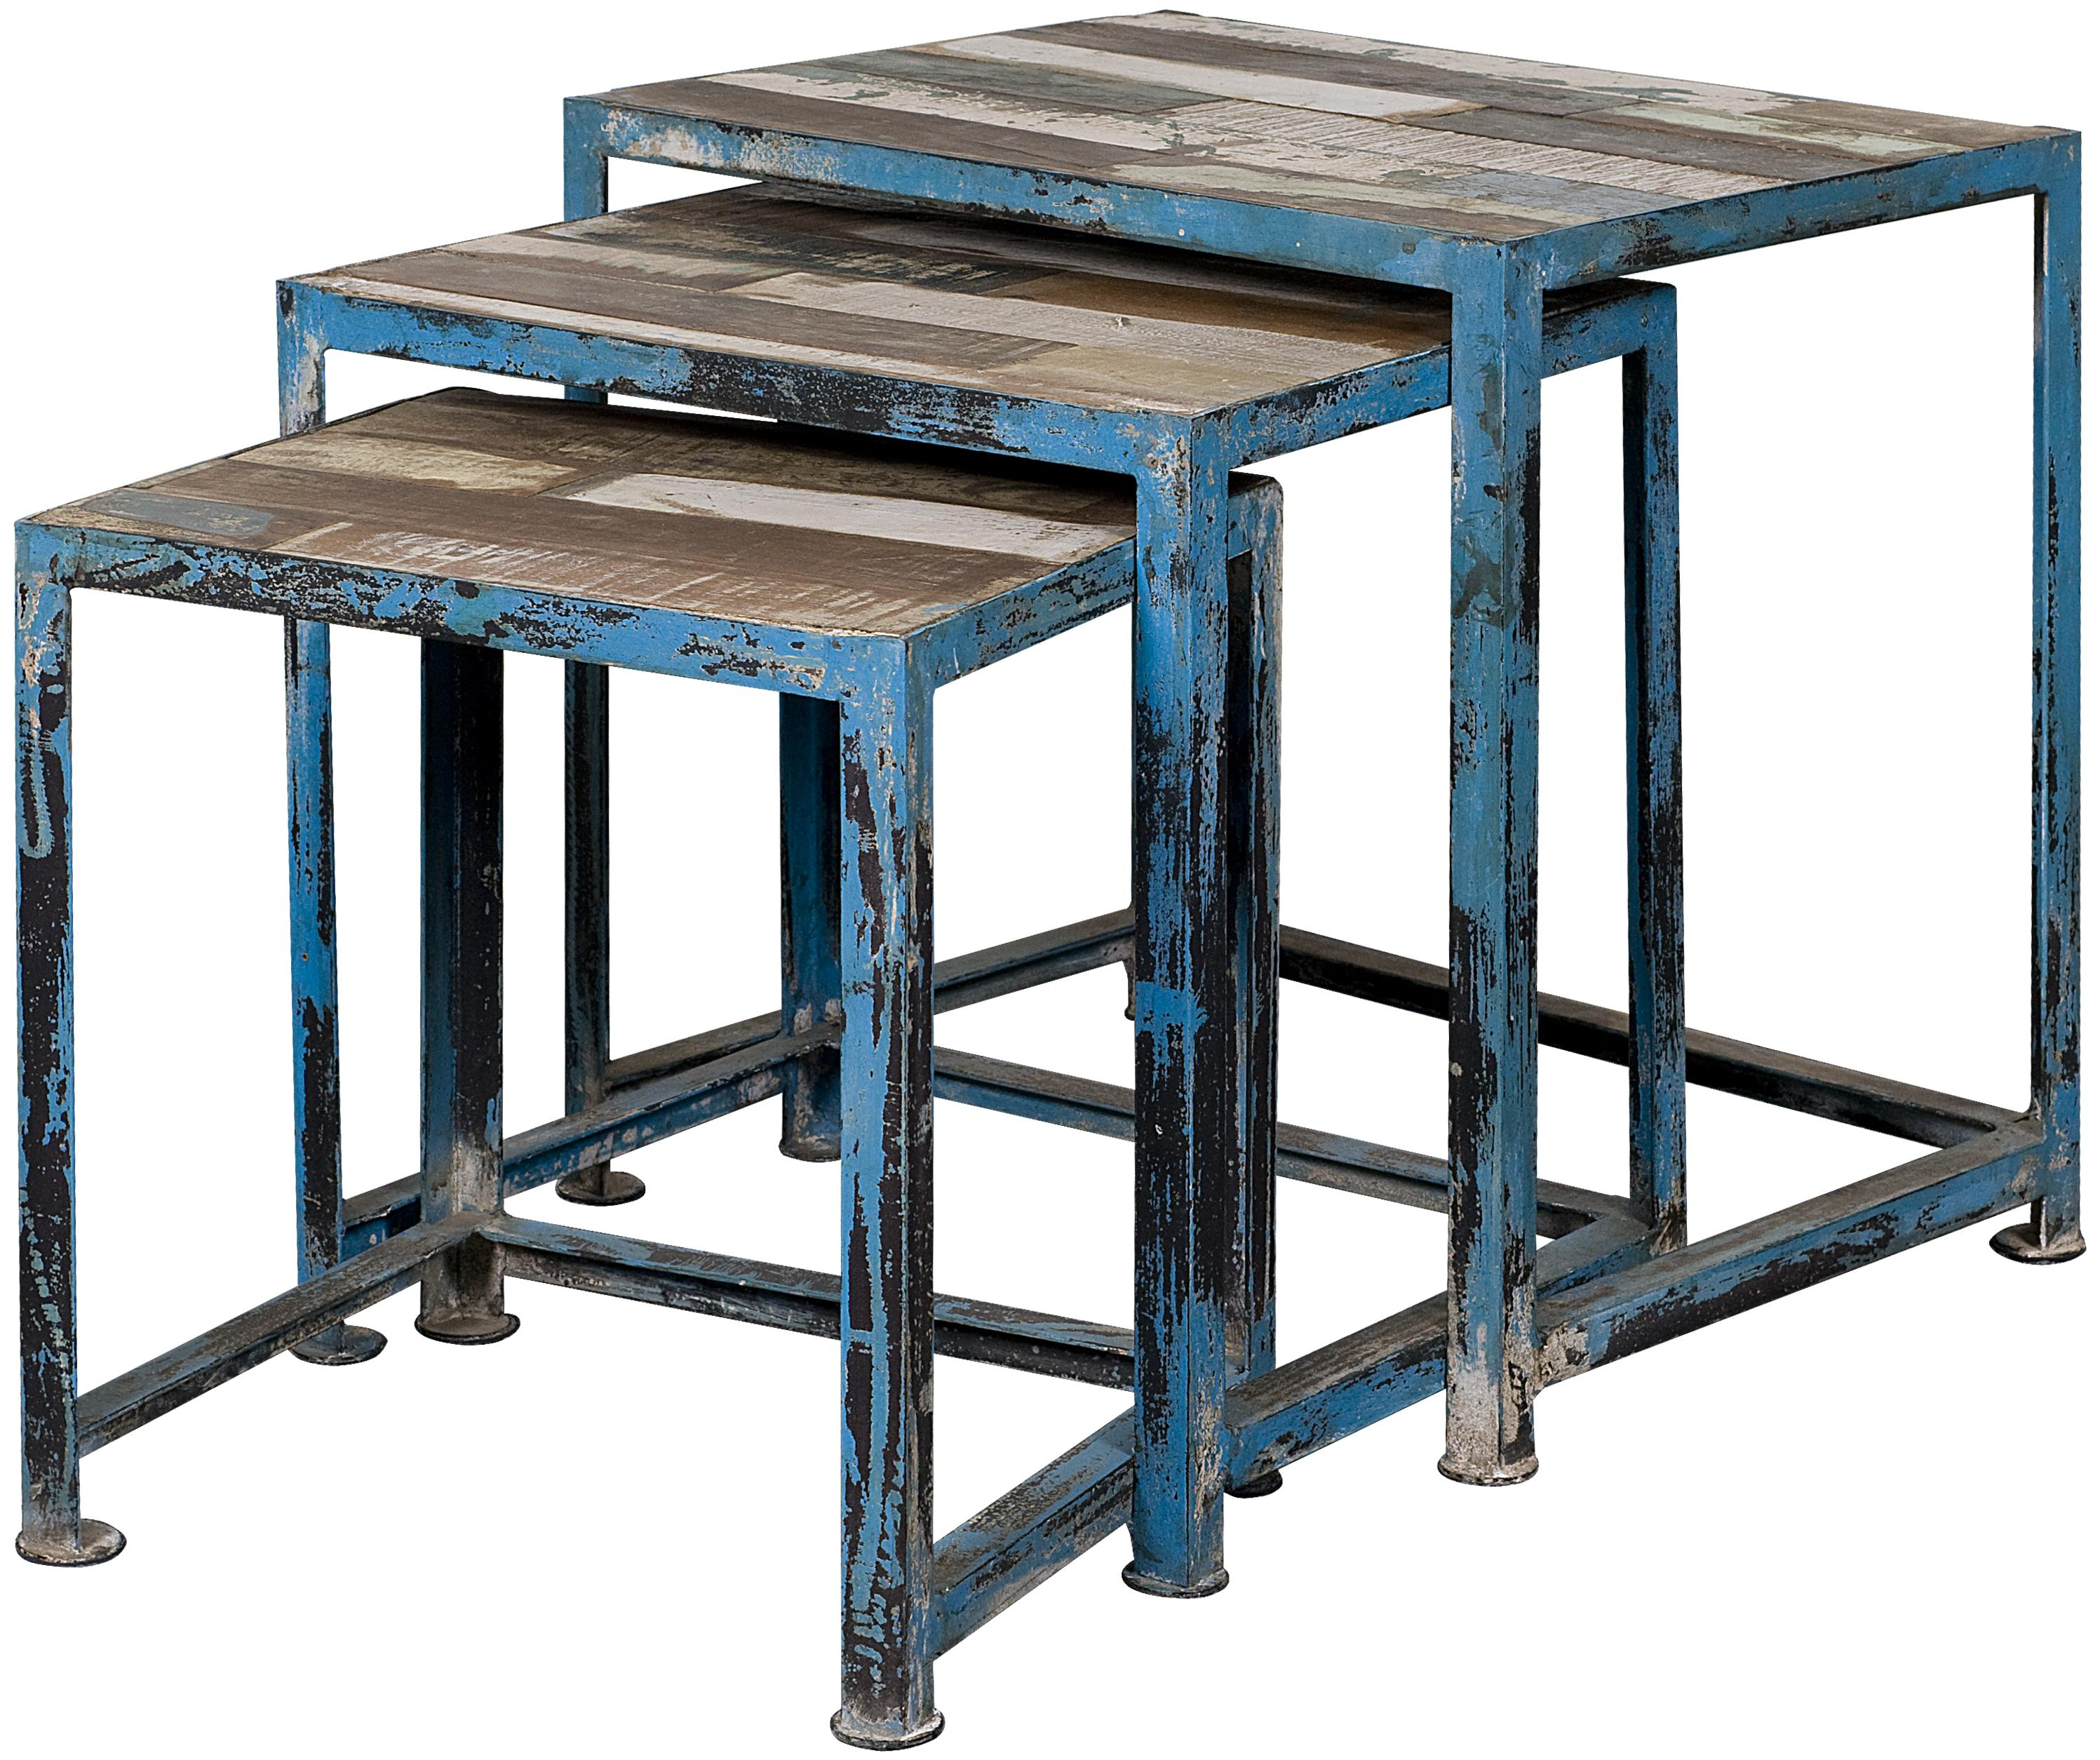 Three Reclaimed Wood U0026 Iron Nesting Tables With Distressed Multi Color  Finish